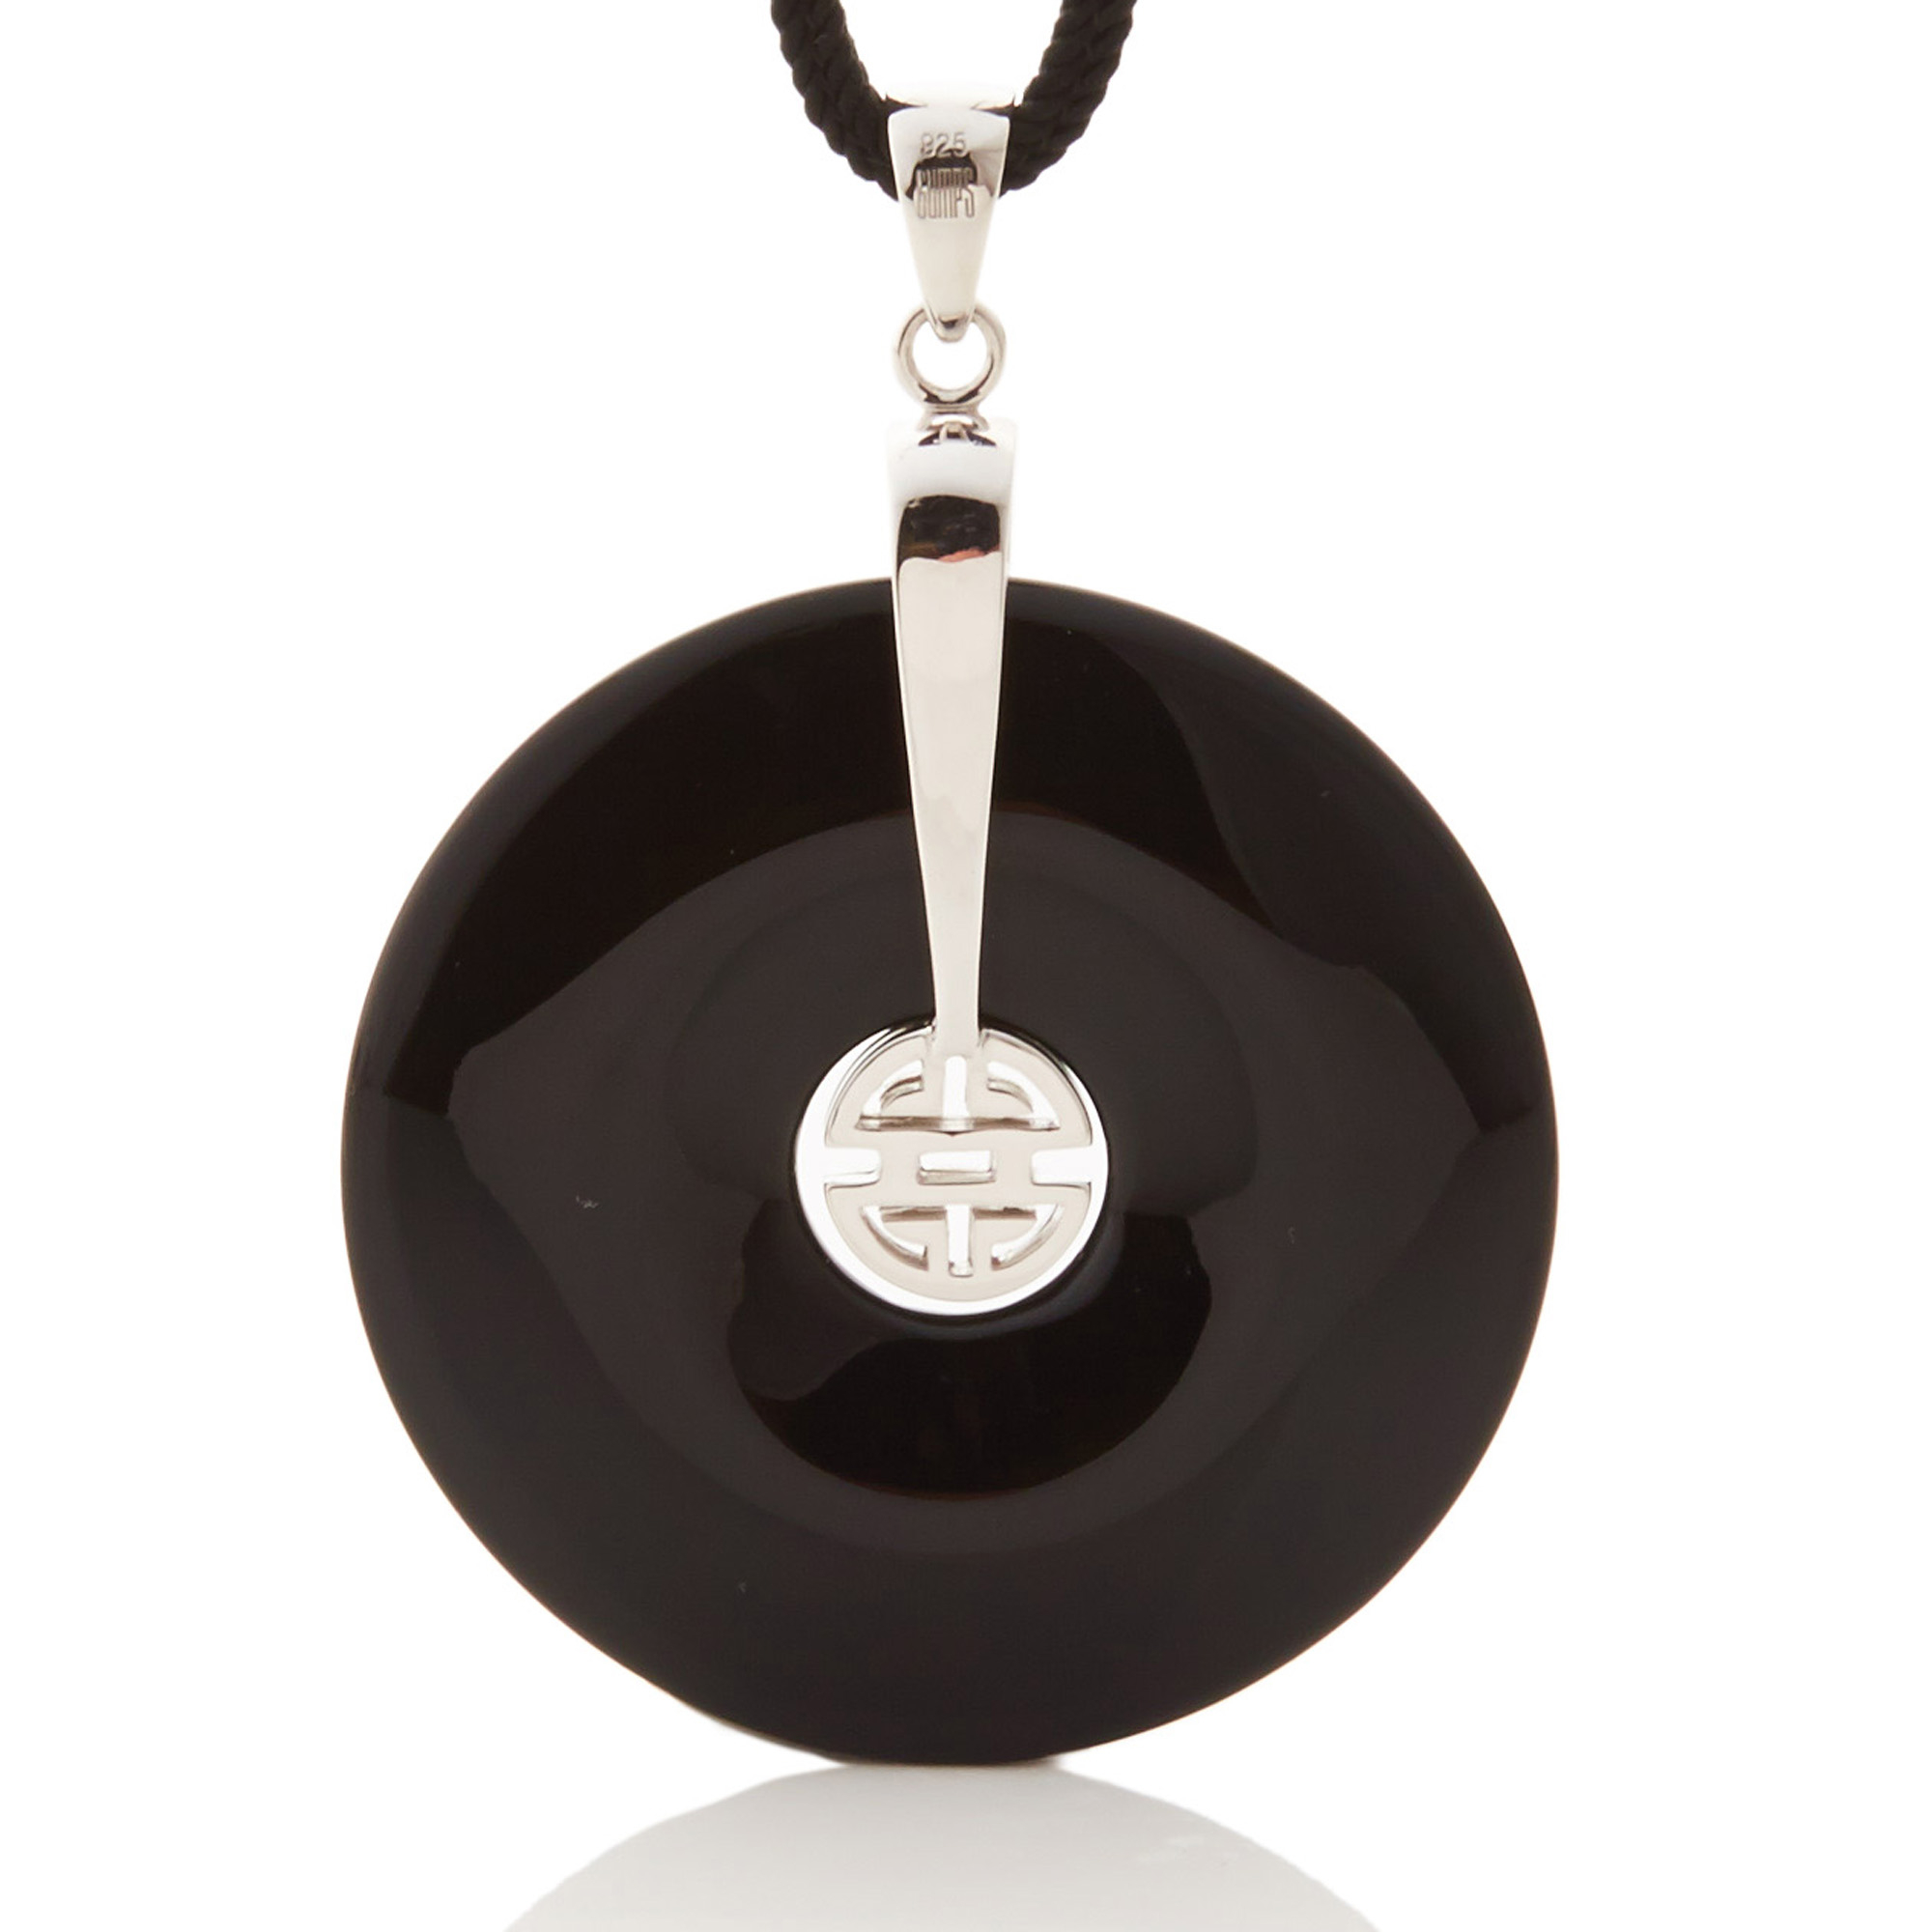 Gump's Shou Onyx Pendant Necklace